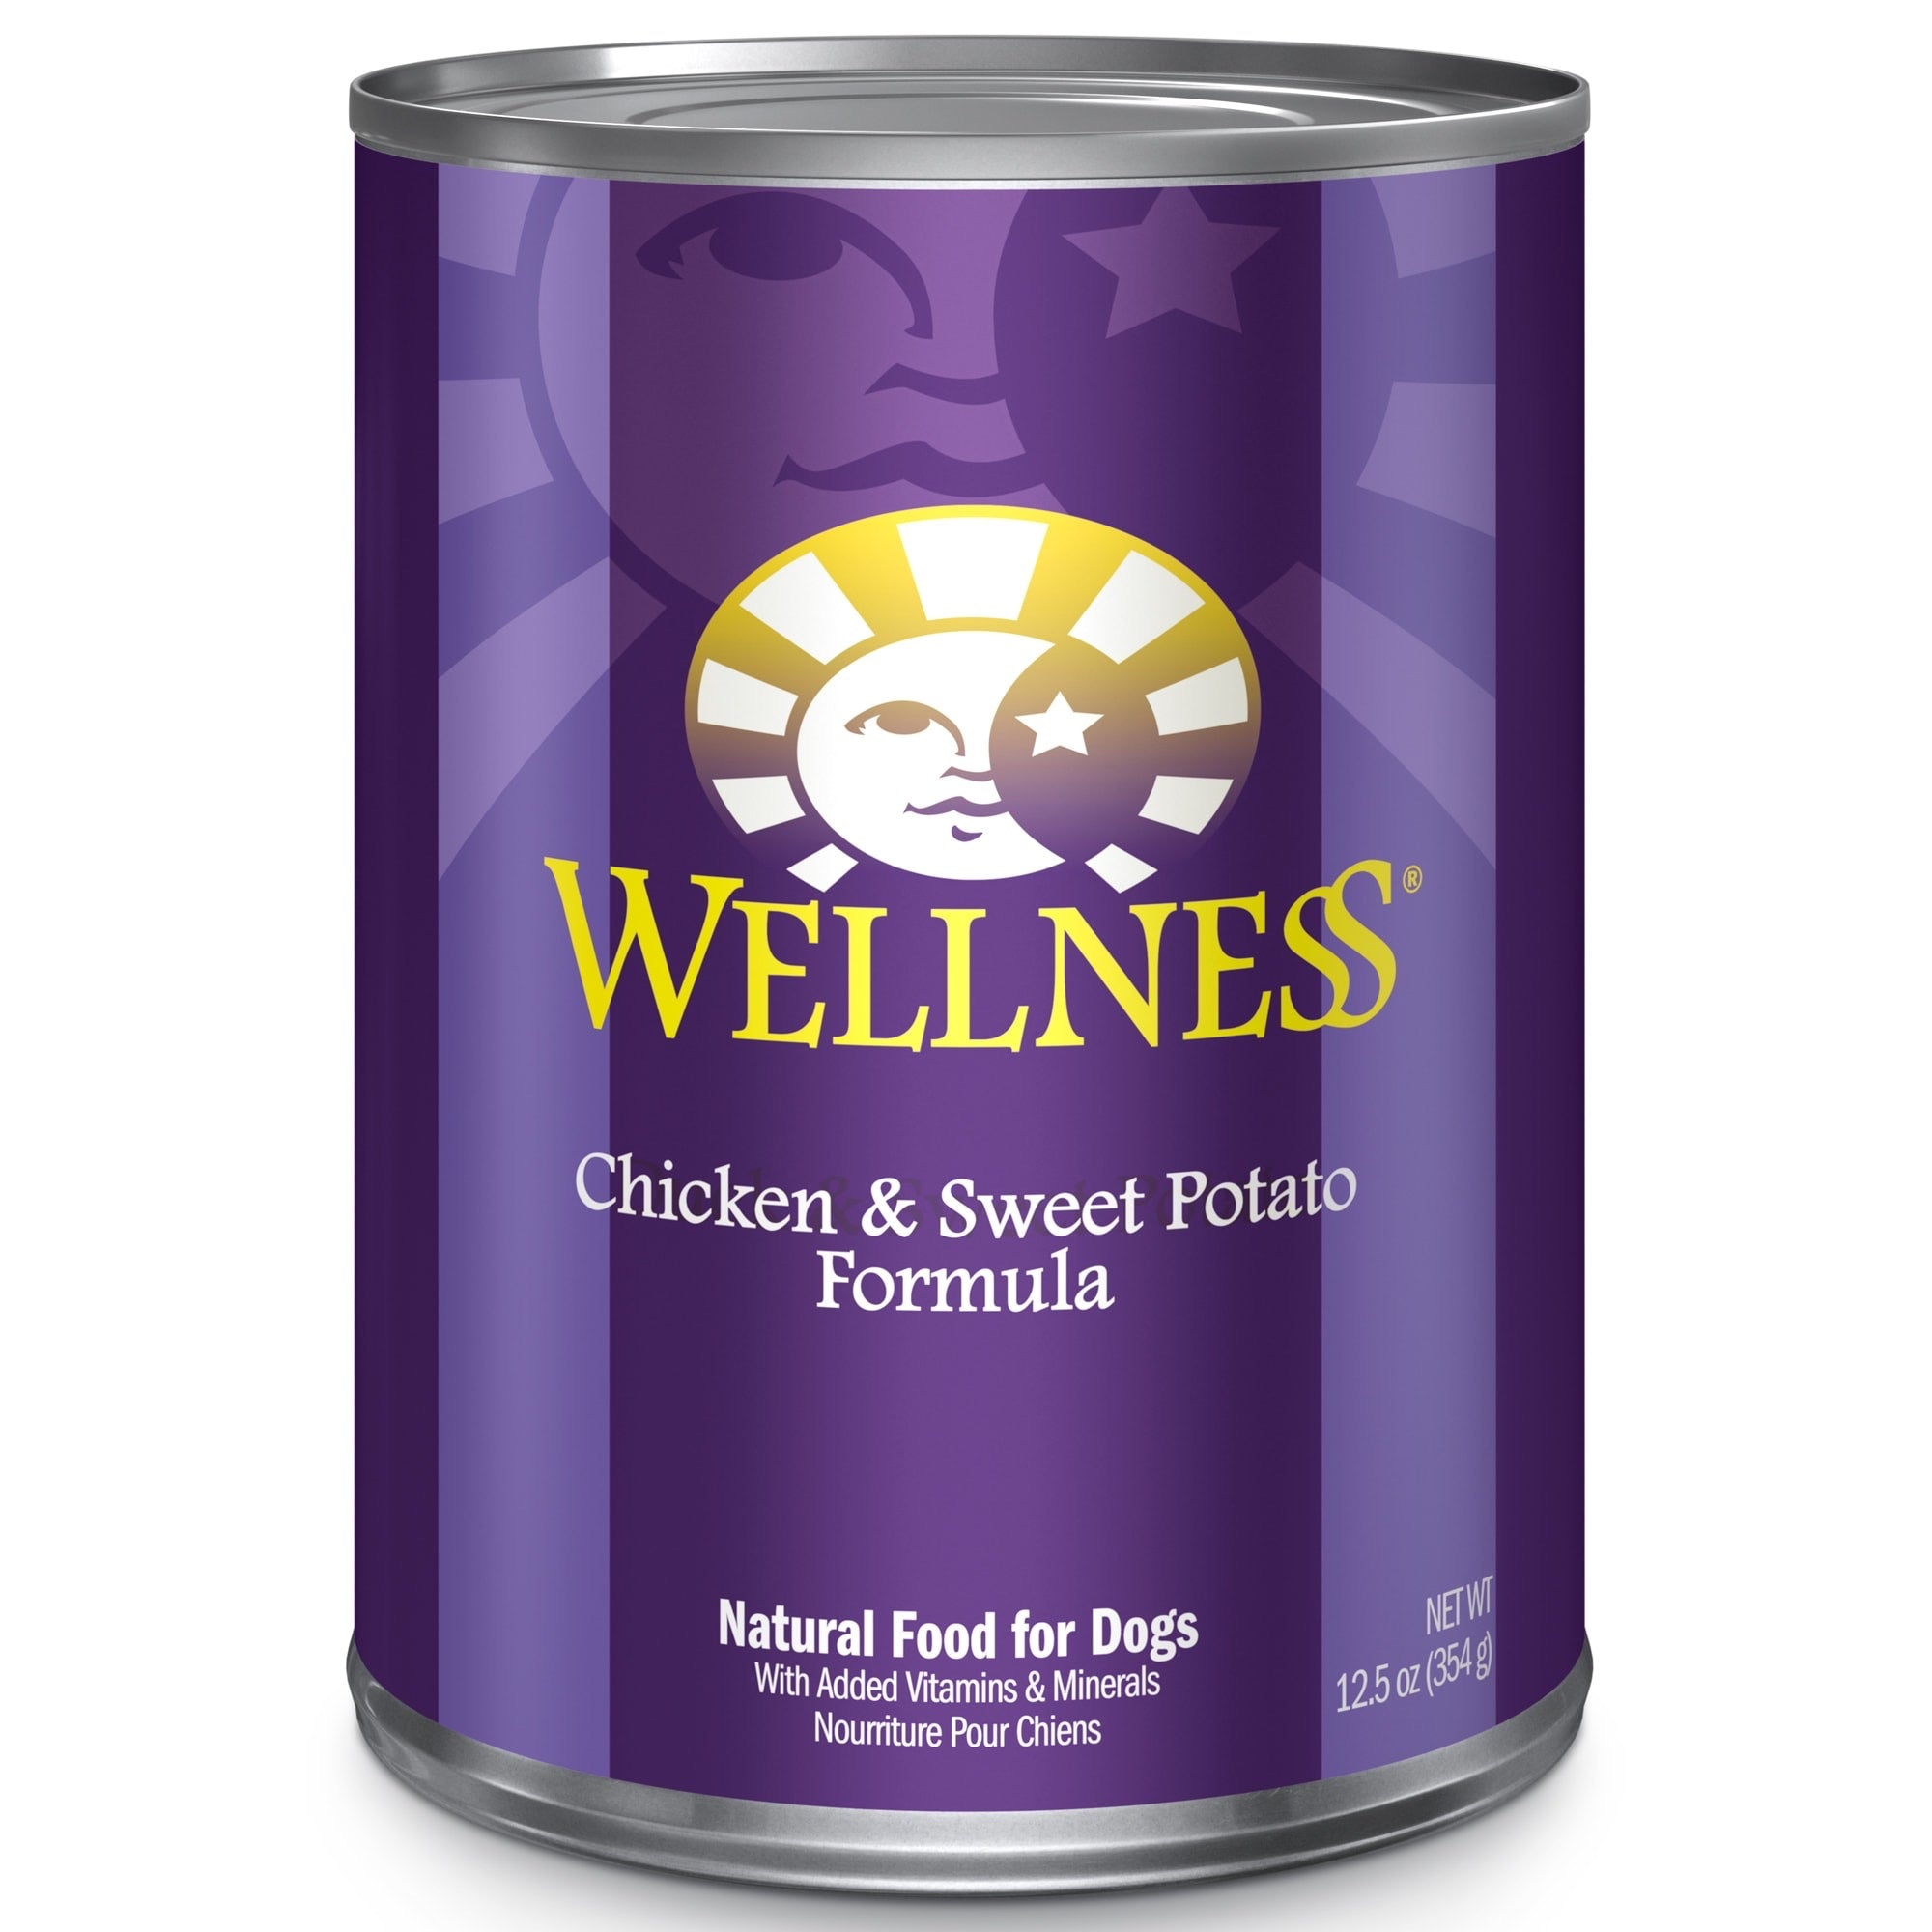 Wellness - Chicken & Sweet Potato (dog)